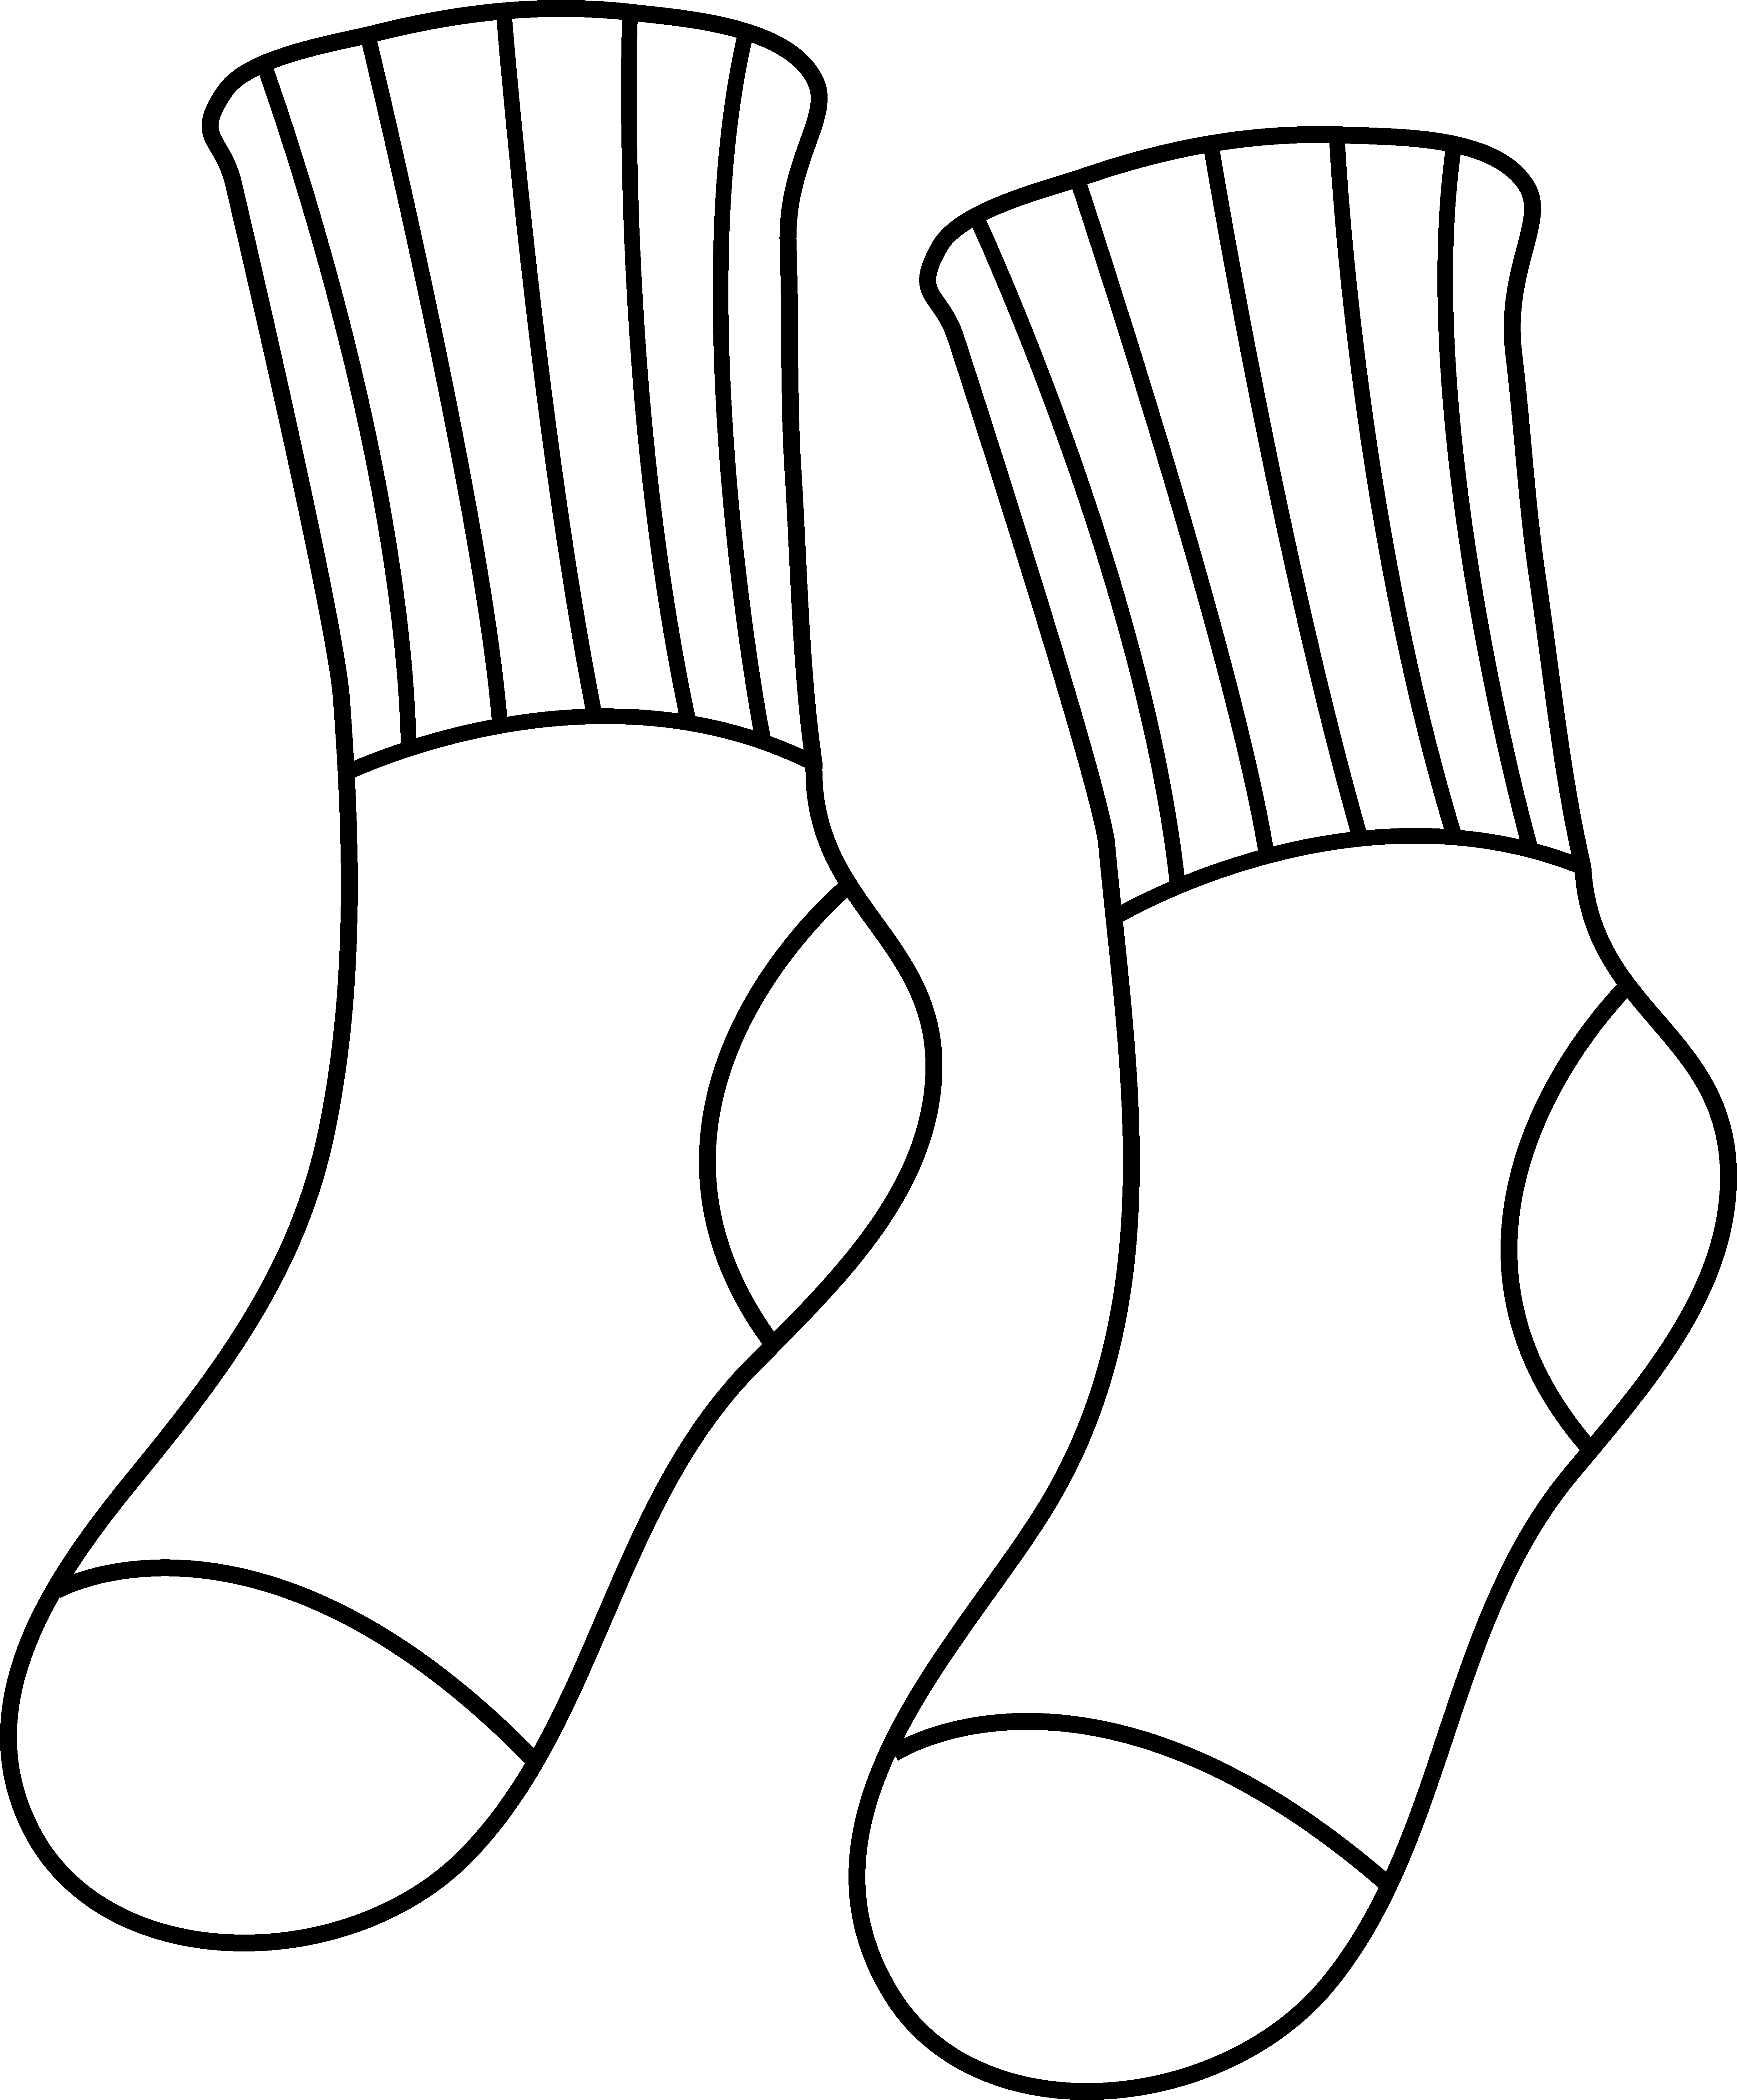 Drawing door colouring page. Socks coloring colorable outline